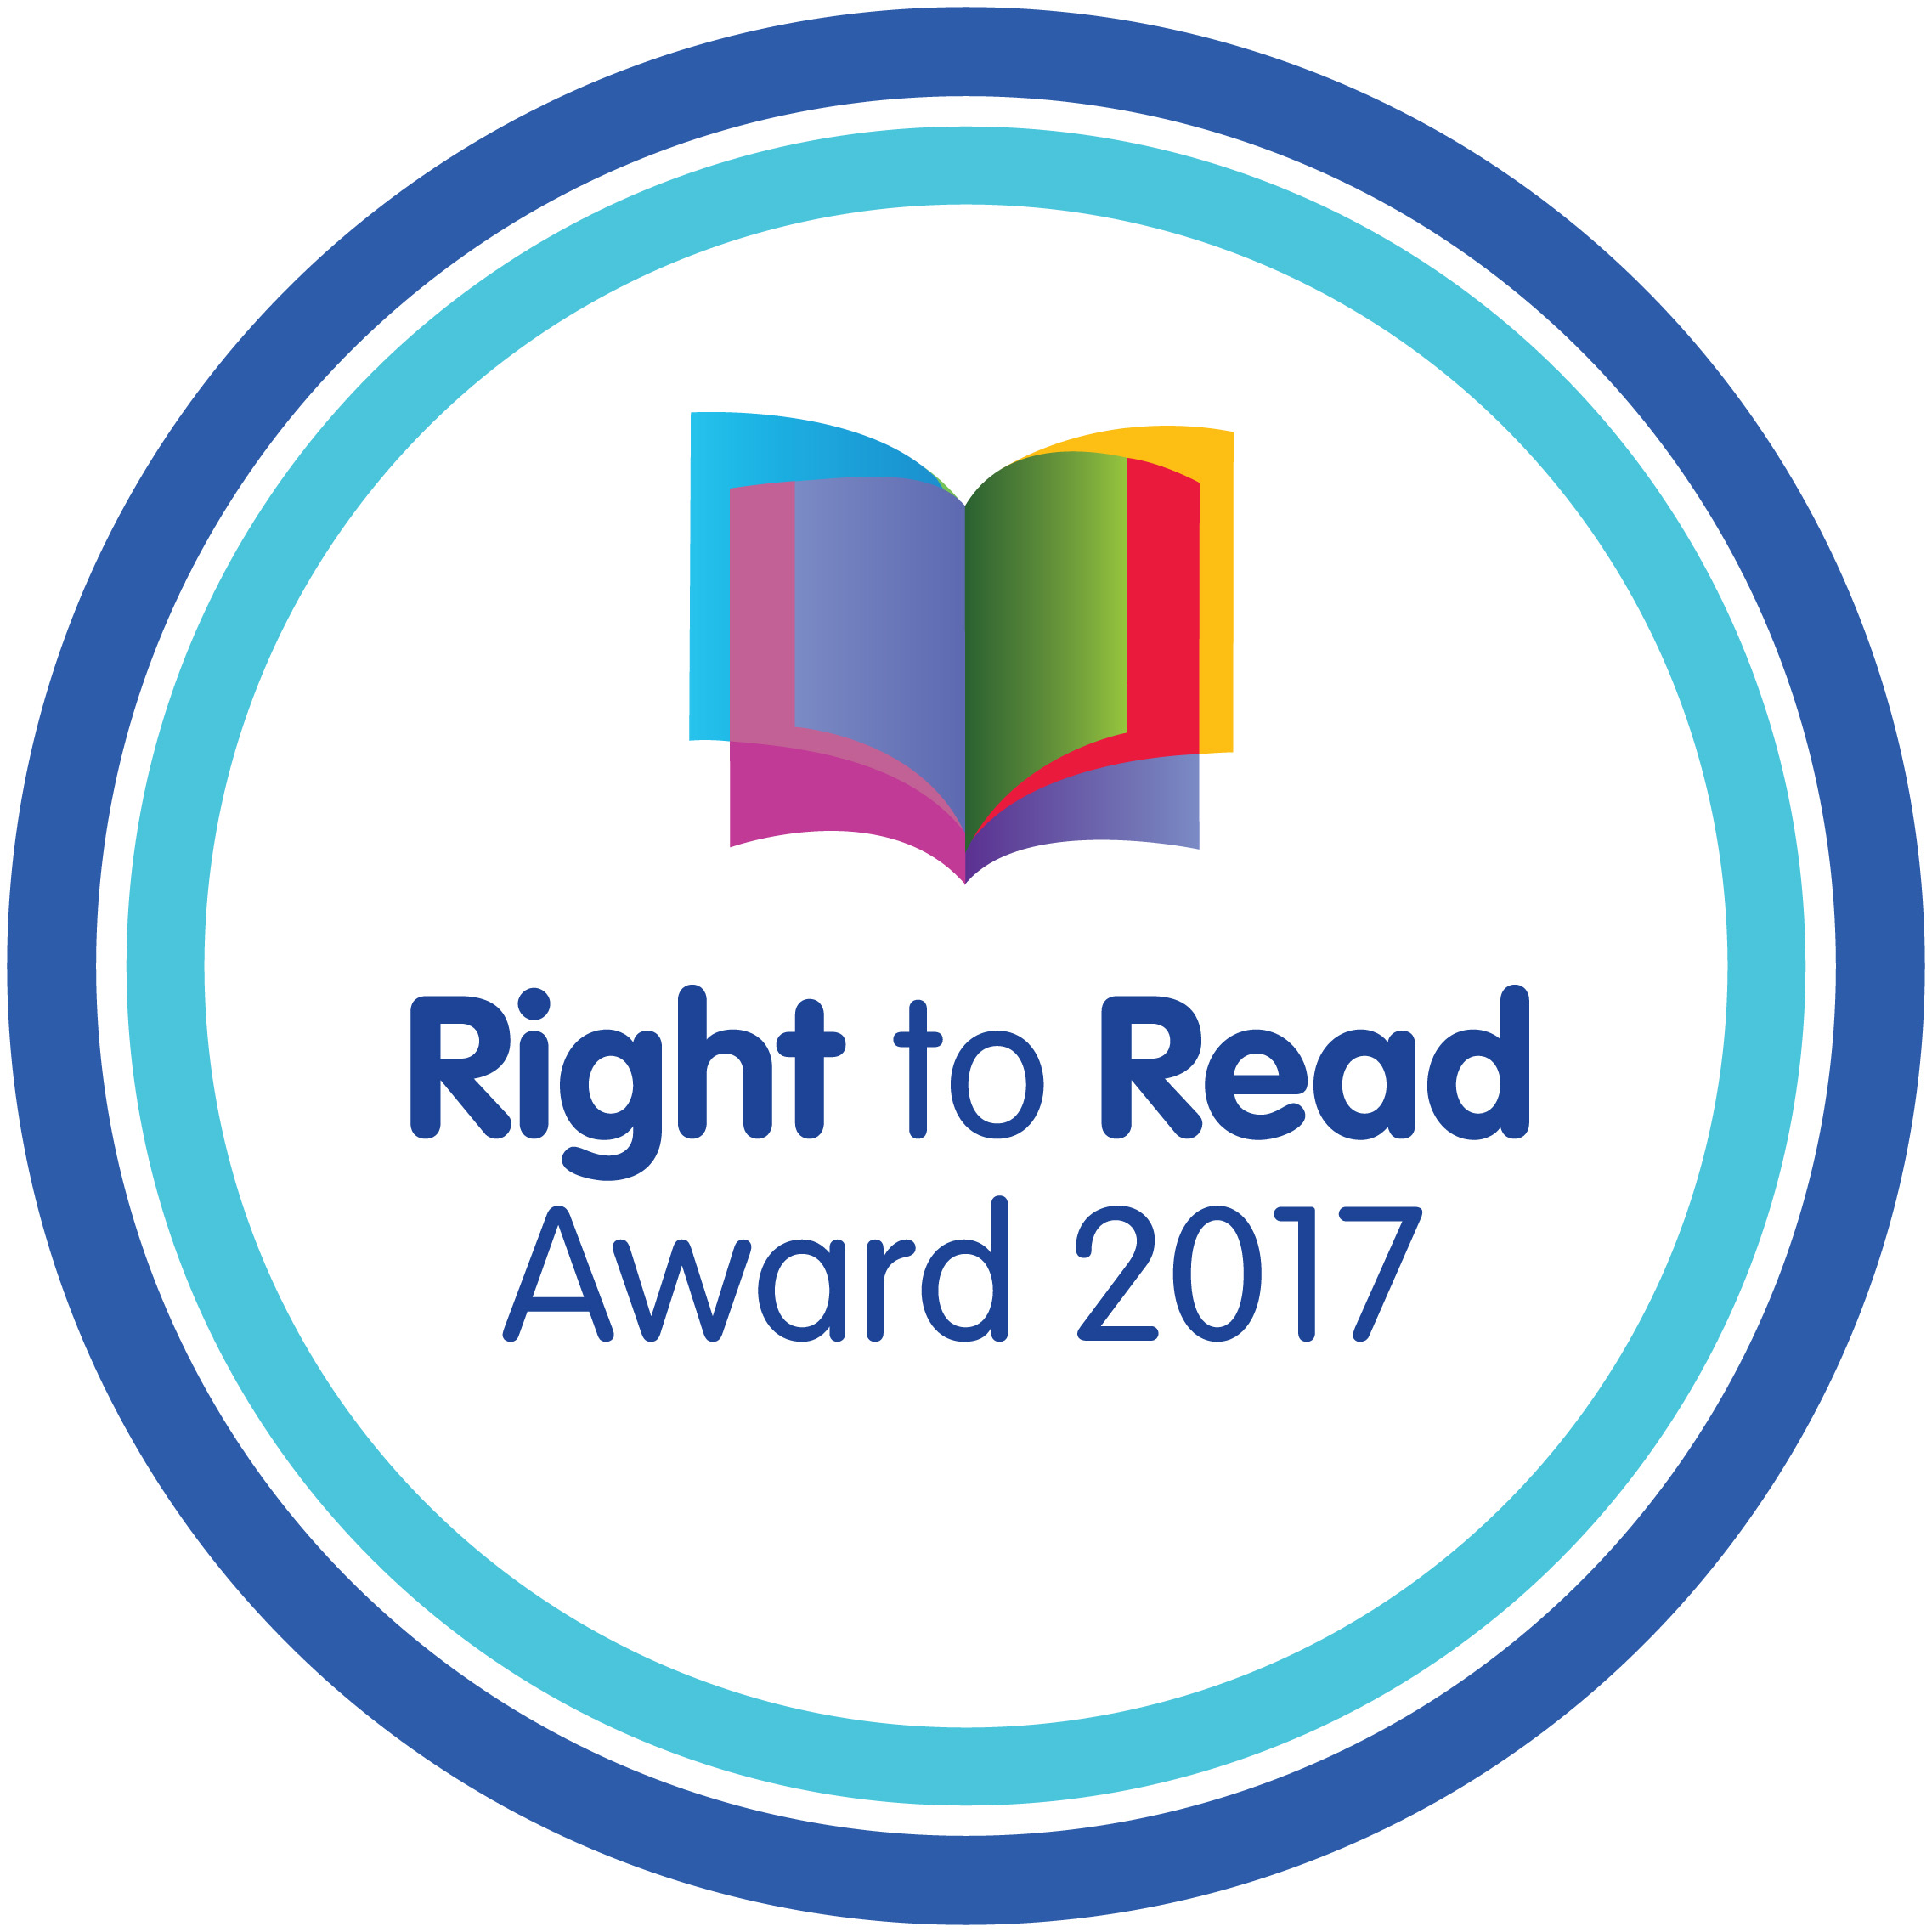 Tipperary Library Service Has Been Awarded The  Right To Read Award 2017 By The Department Of Rural And Community Development